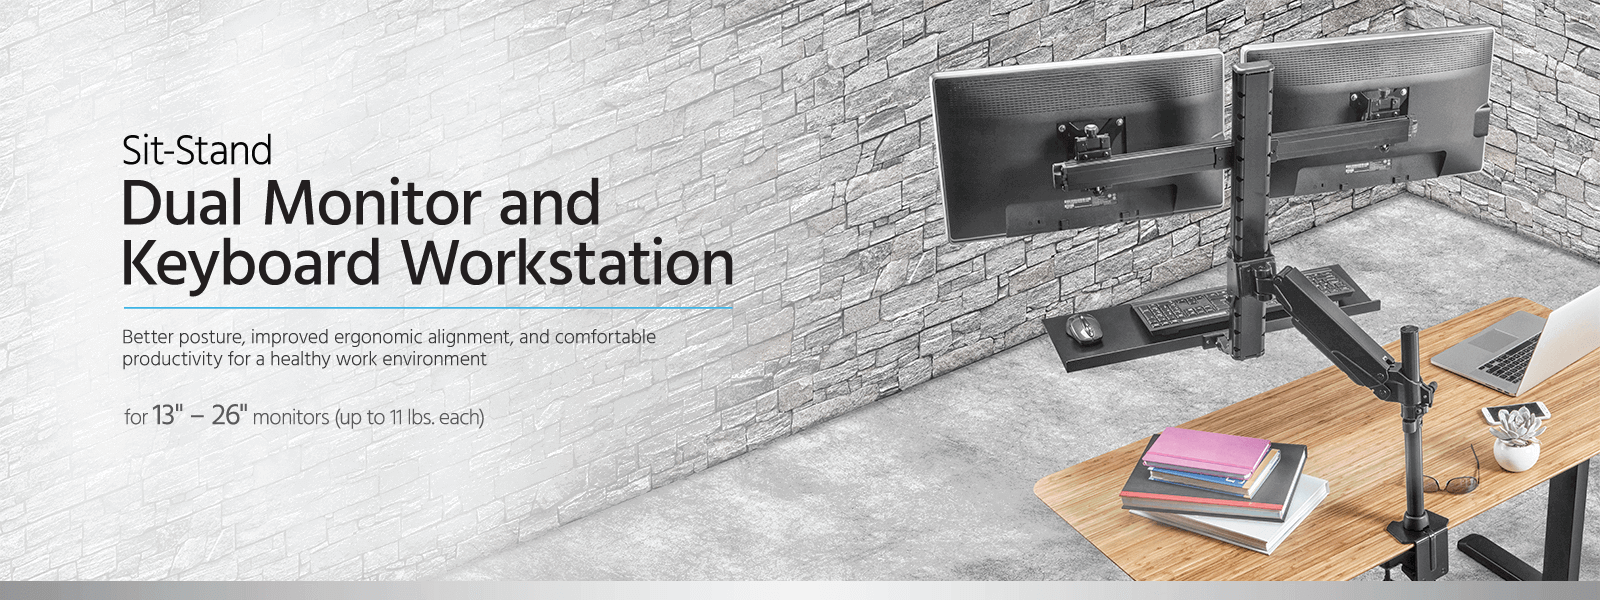 Sit-Stand Dual Monitor and Keyboard Workstation